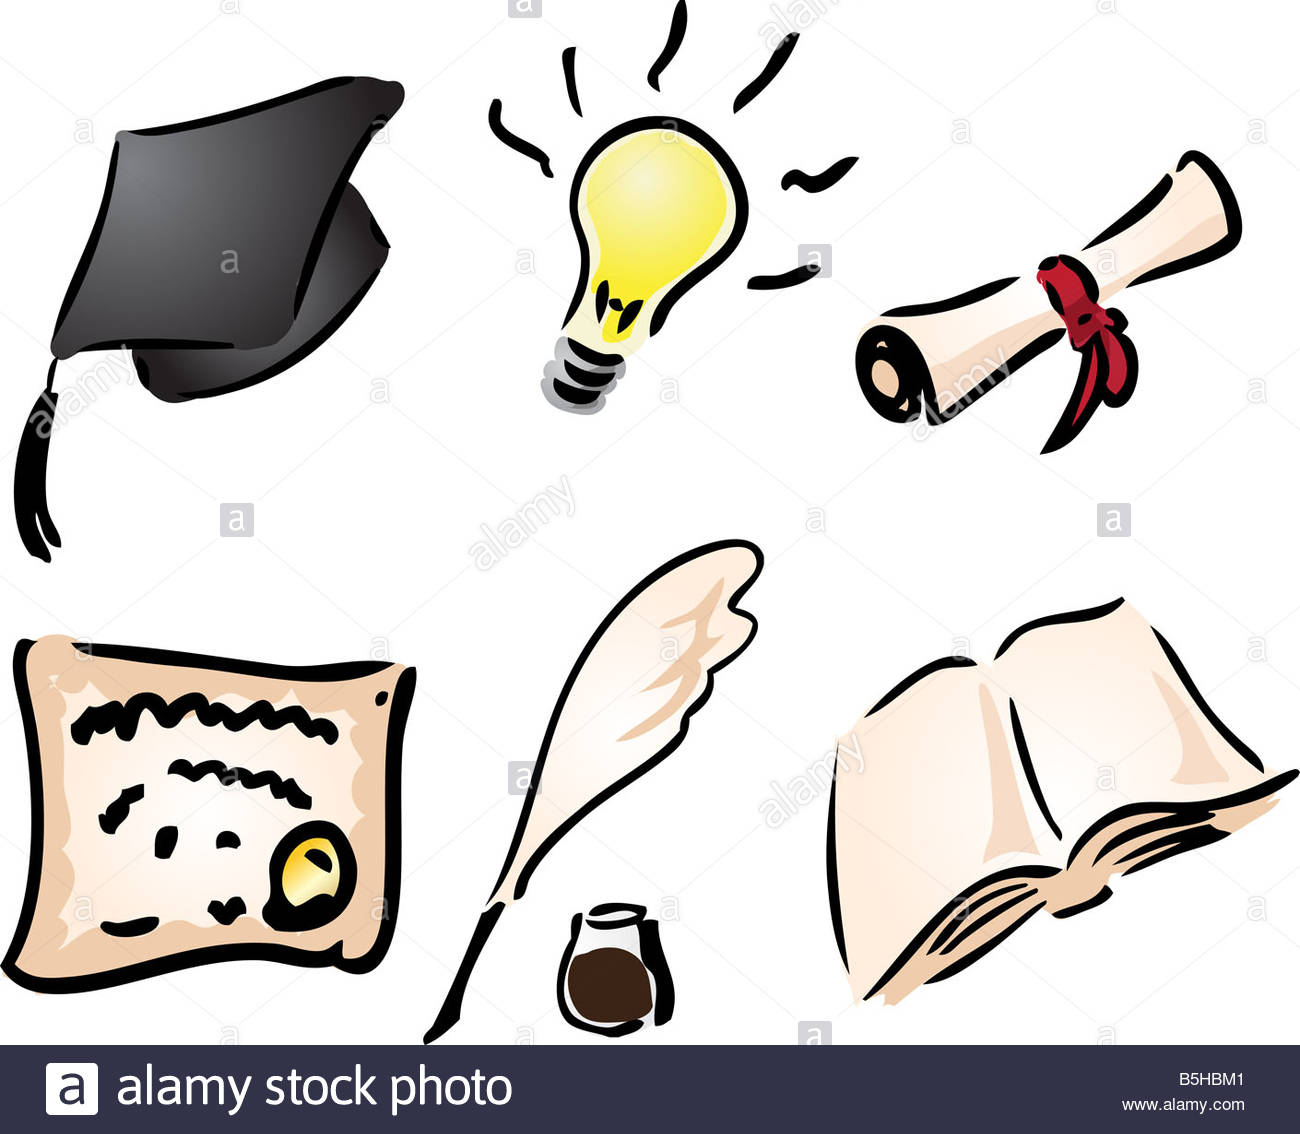 Education And Learning Icons Assorted Clipart Illustration Stock.